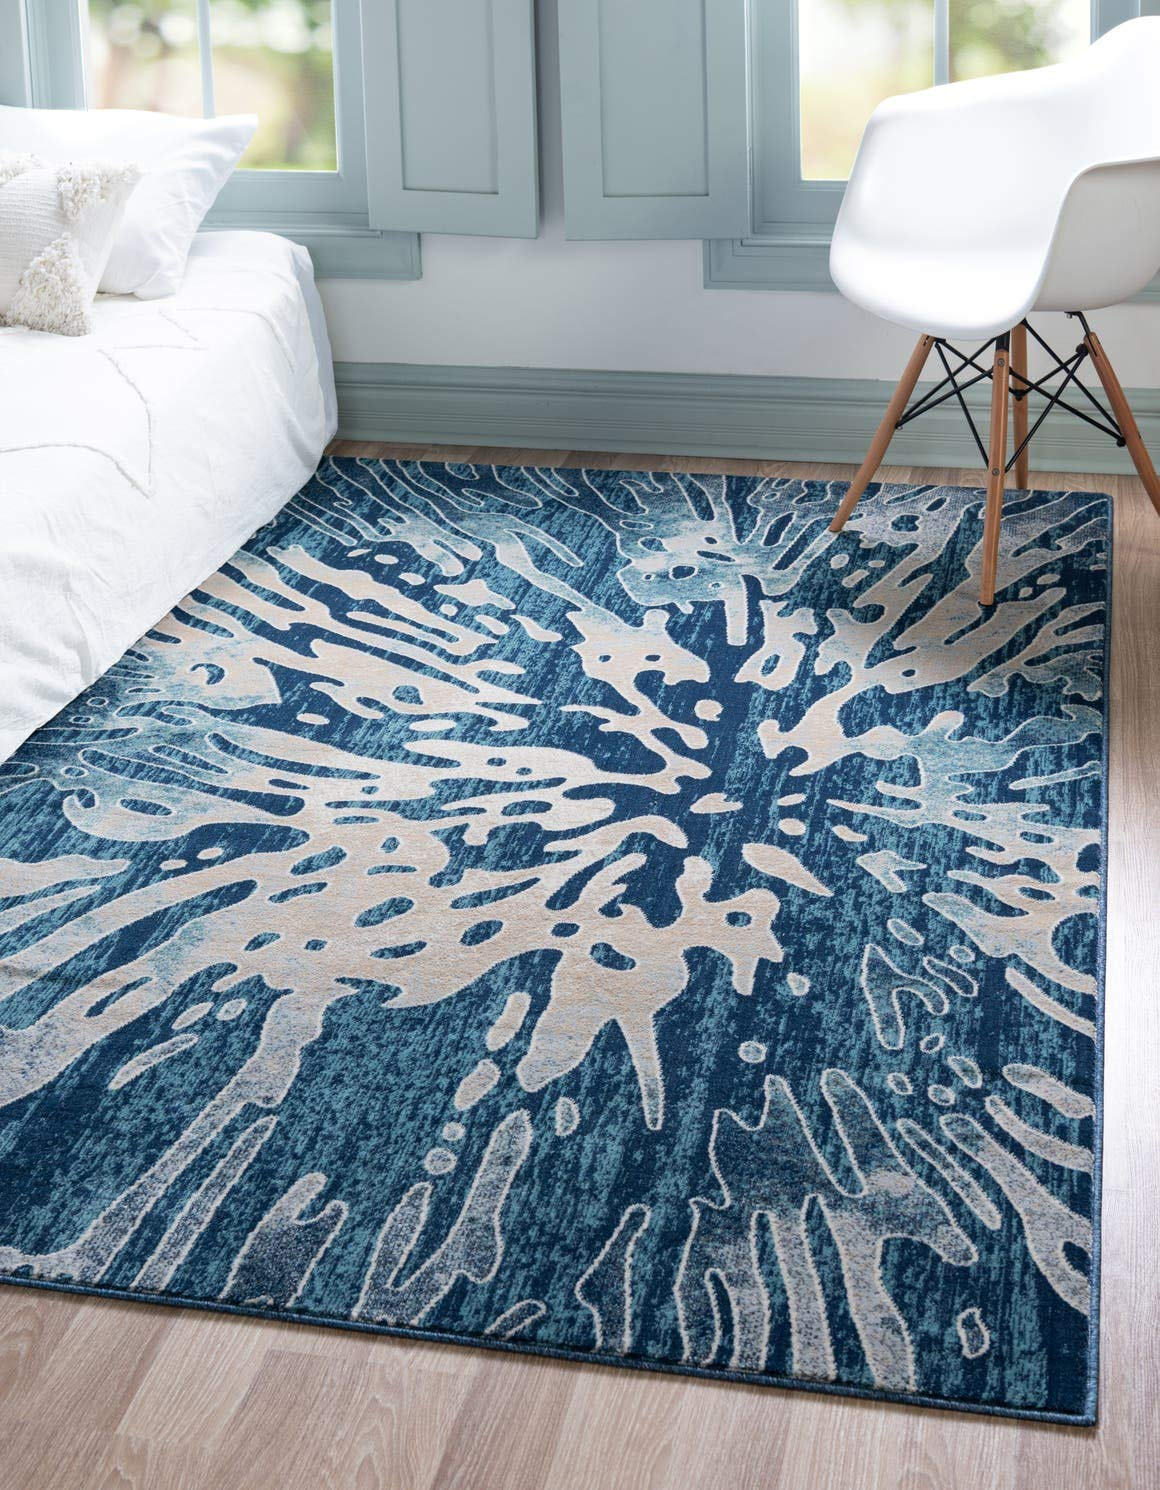 Unique Loom Mystic Collection Abstract Vintage Water Navy Blue Area Rug 5 0 x 8 0